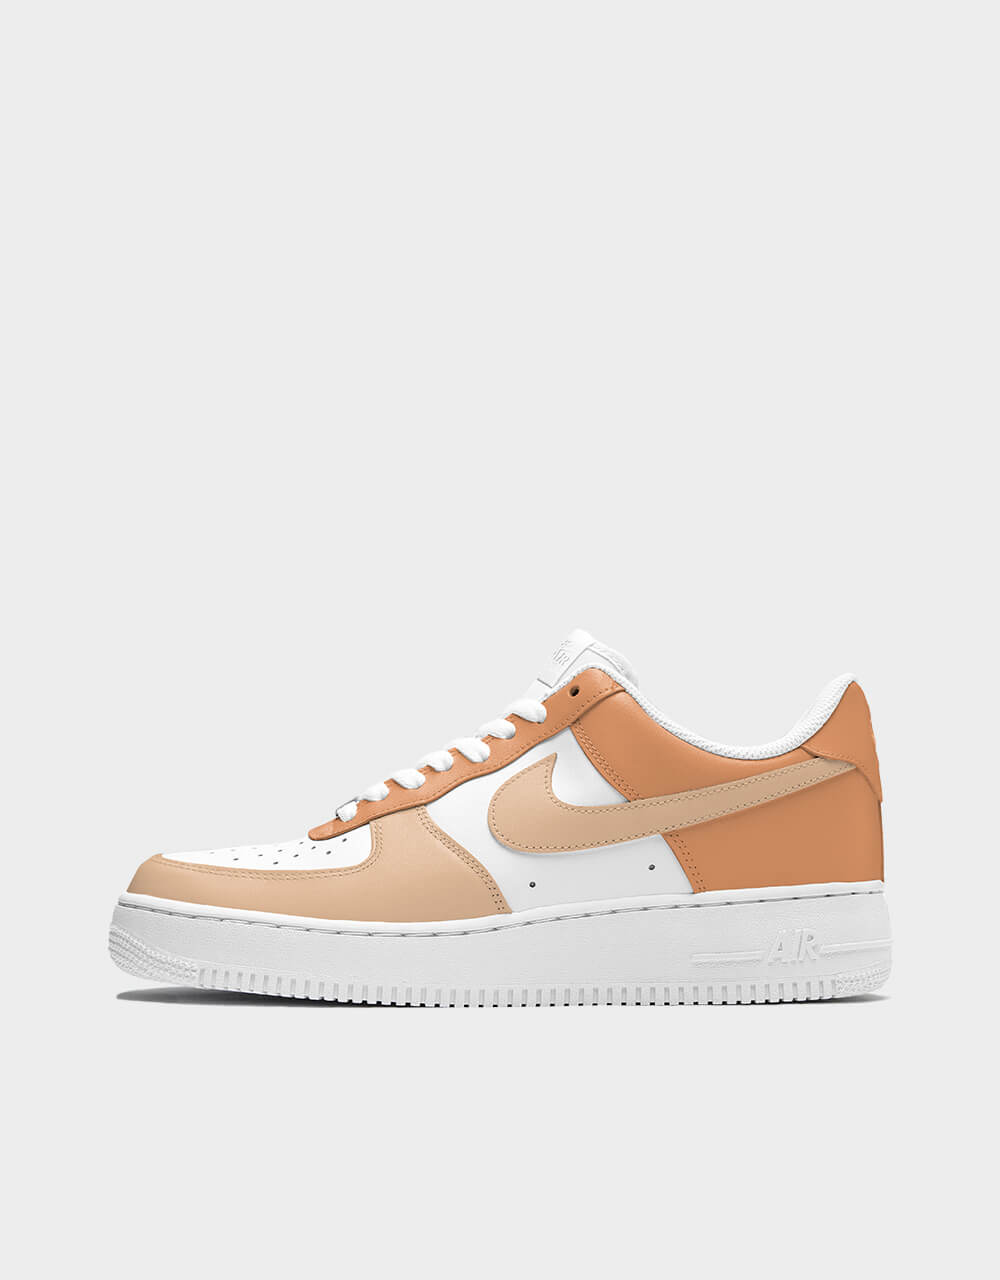 """Sneakers Air Force One, modèle """"Amberglow Sandstone"""""""